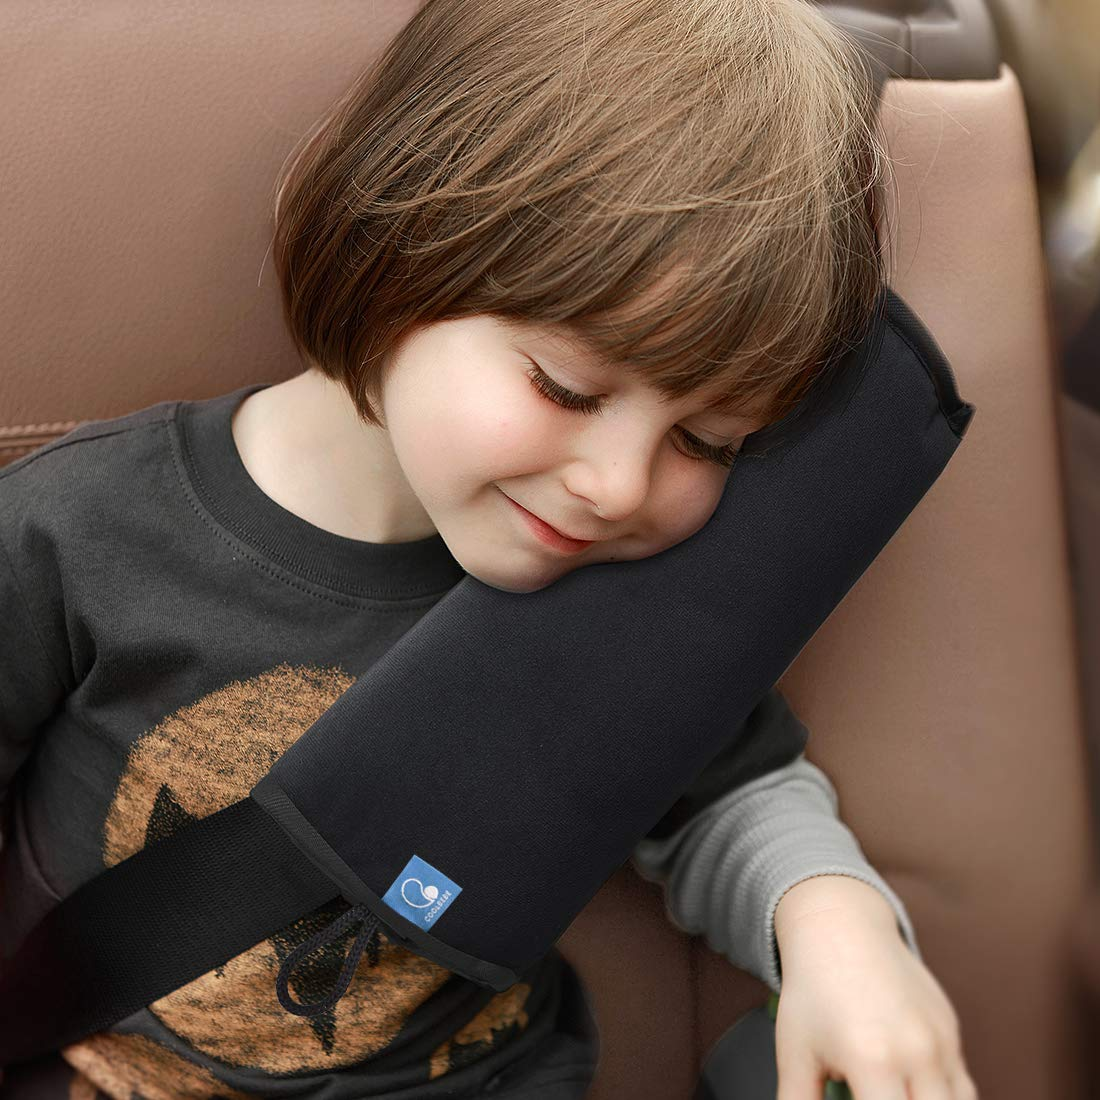 COOLBEBE Seat Belt Pillow for Kids, Extra Soft Support Travel Pillow for Head Neck and Shoulder in Car, Universal Carseat Strap Cushion Pads for Childs Baby People Adults, Black